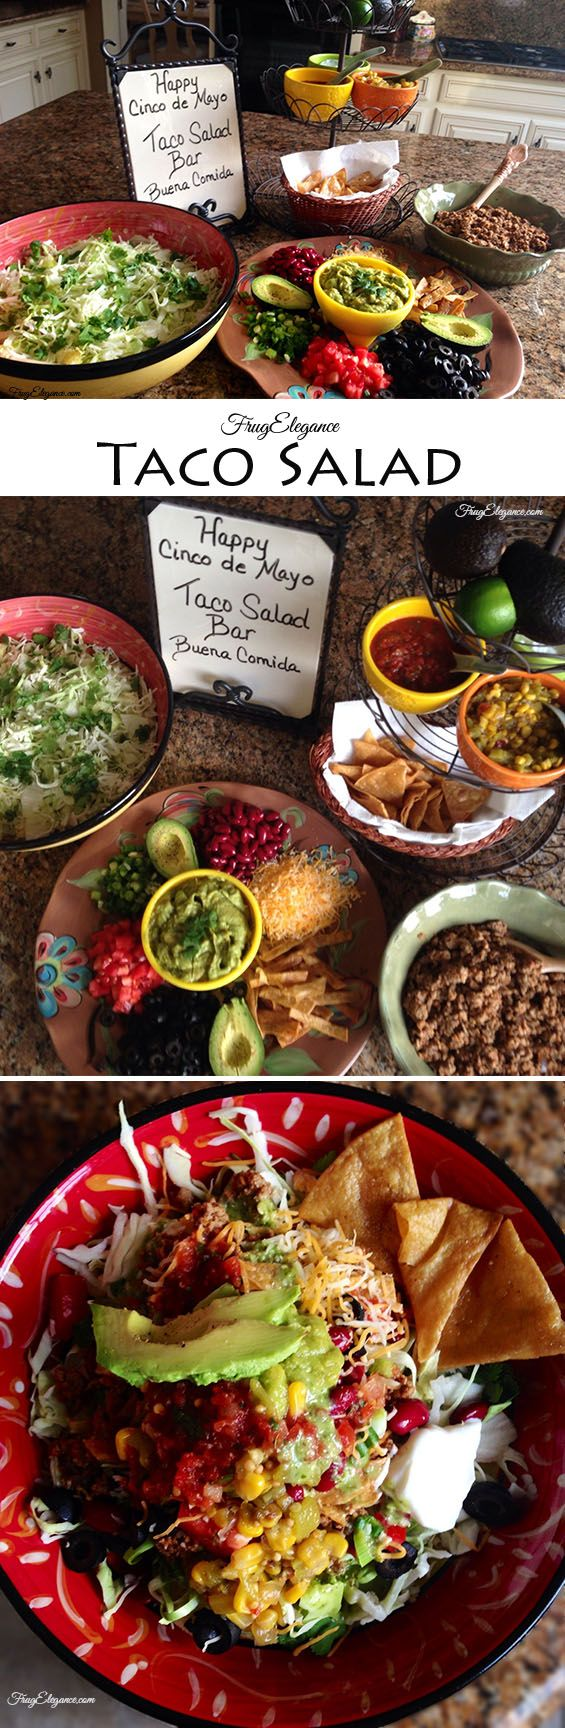 Healthy Taco Salad~make a salad bar for your family with ground turkey and healthy options for a tasty salad. I also enjoy Traders Joes lowfat cilantro dressing #tacosalad #salad